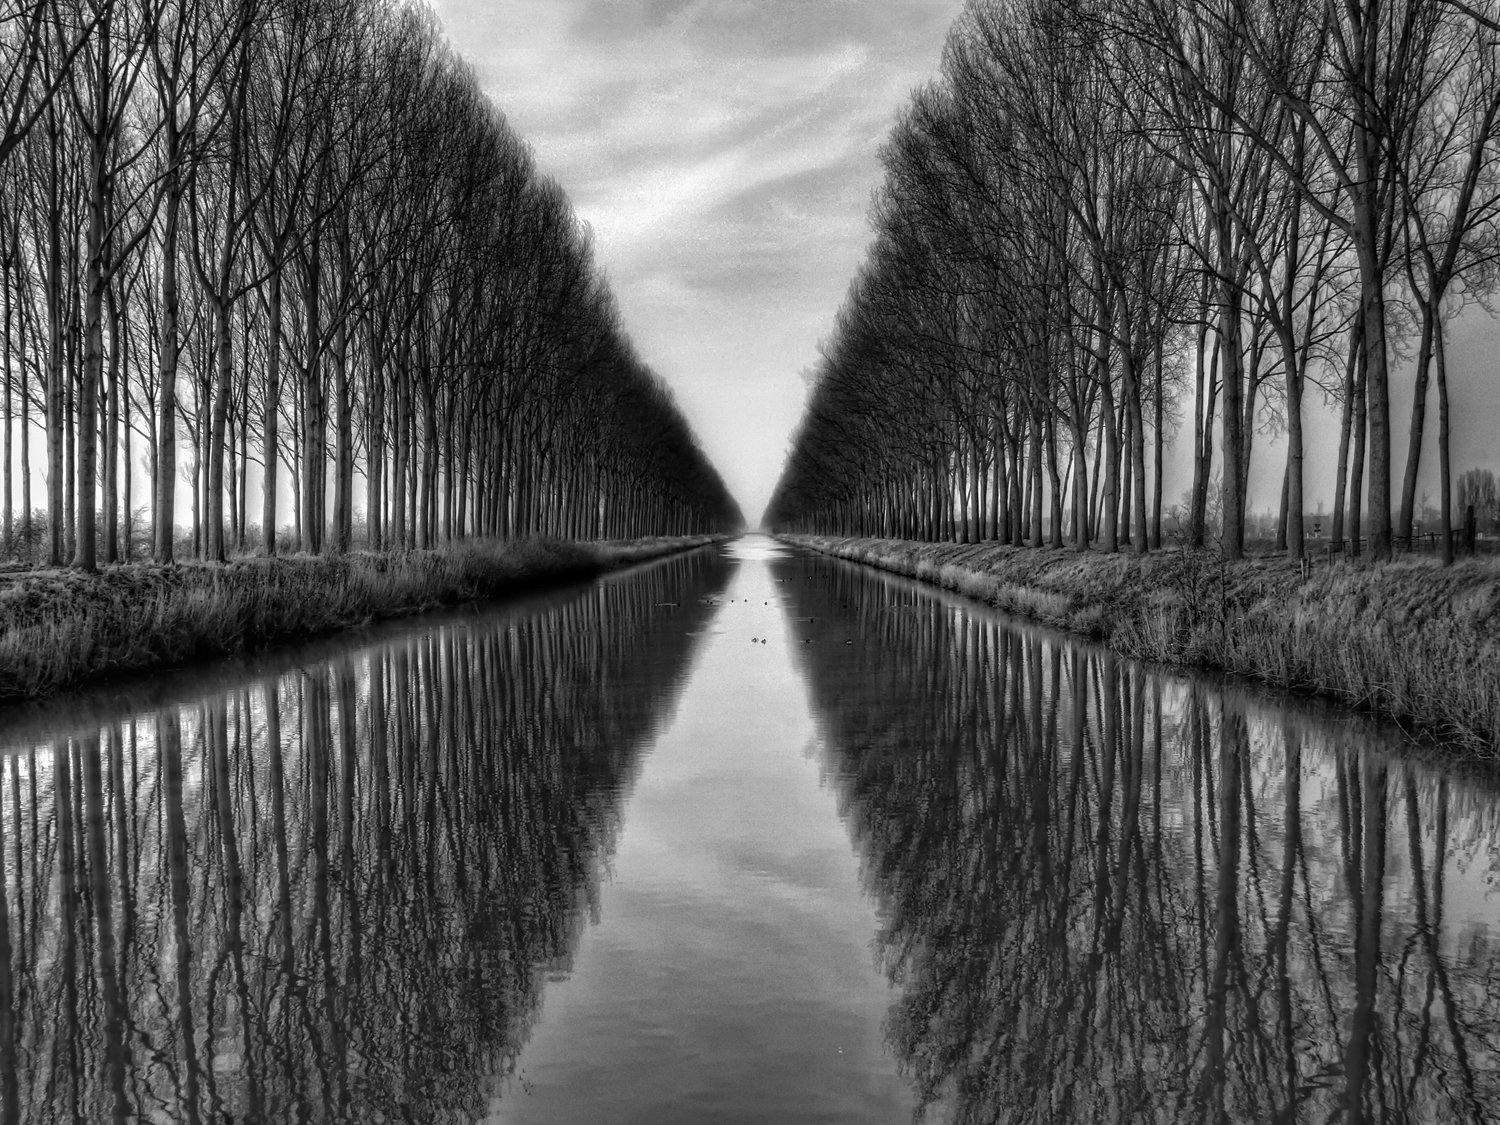 JP London Heavyweight Non Woven Art JPL and Yvette Depaepe Present Vanished to The Infinite Reflect Forest Path Black 36in x 48in Prepasted Fully Removable Wall Poster Mural PMURLT1X56473 36 x 48